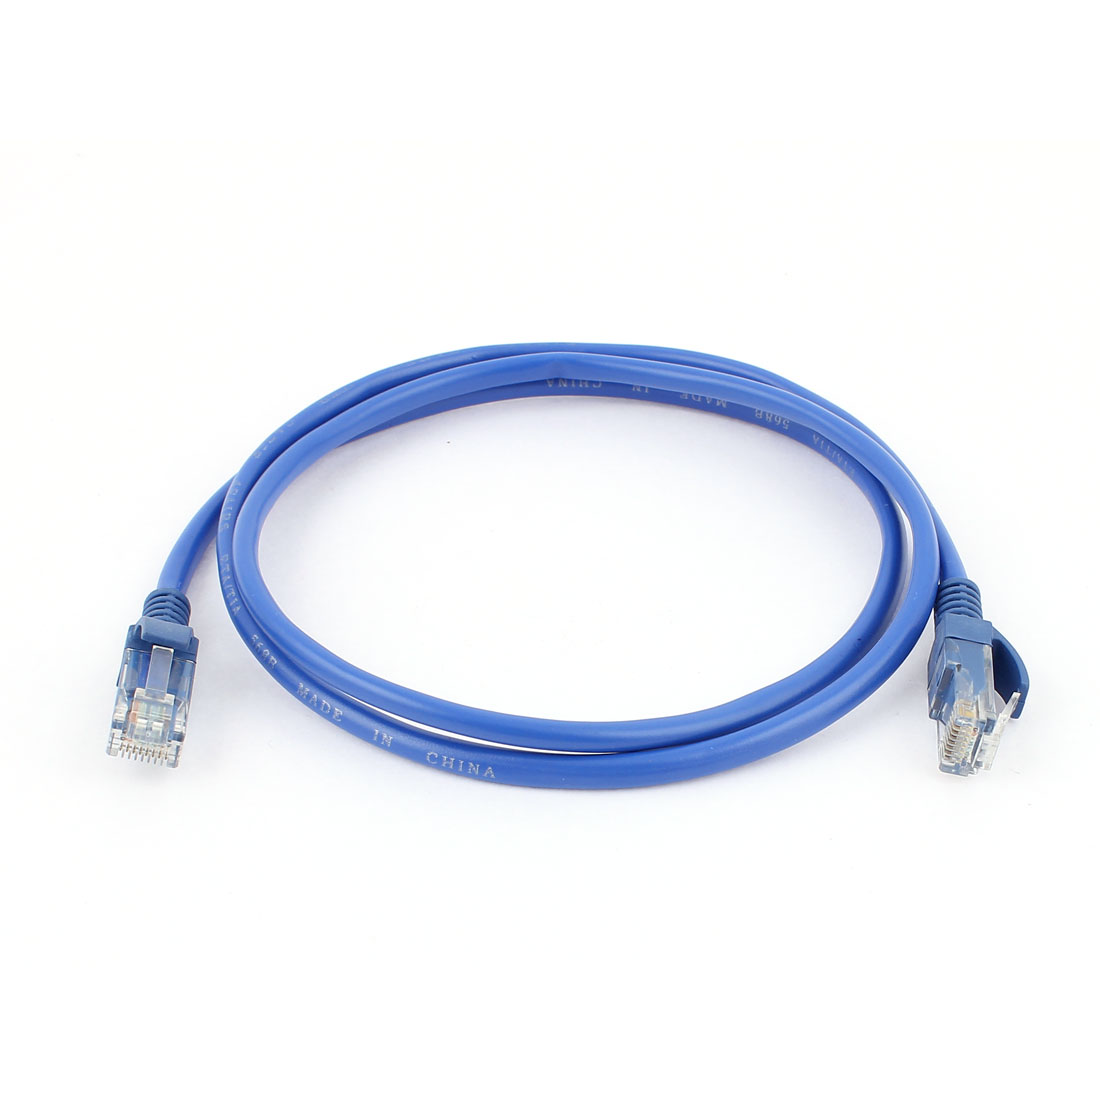 A100 8P8C 1M Male Ethernet LAN Network Patch Connector Cable Cord Blue